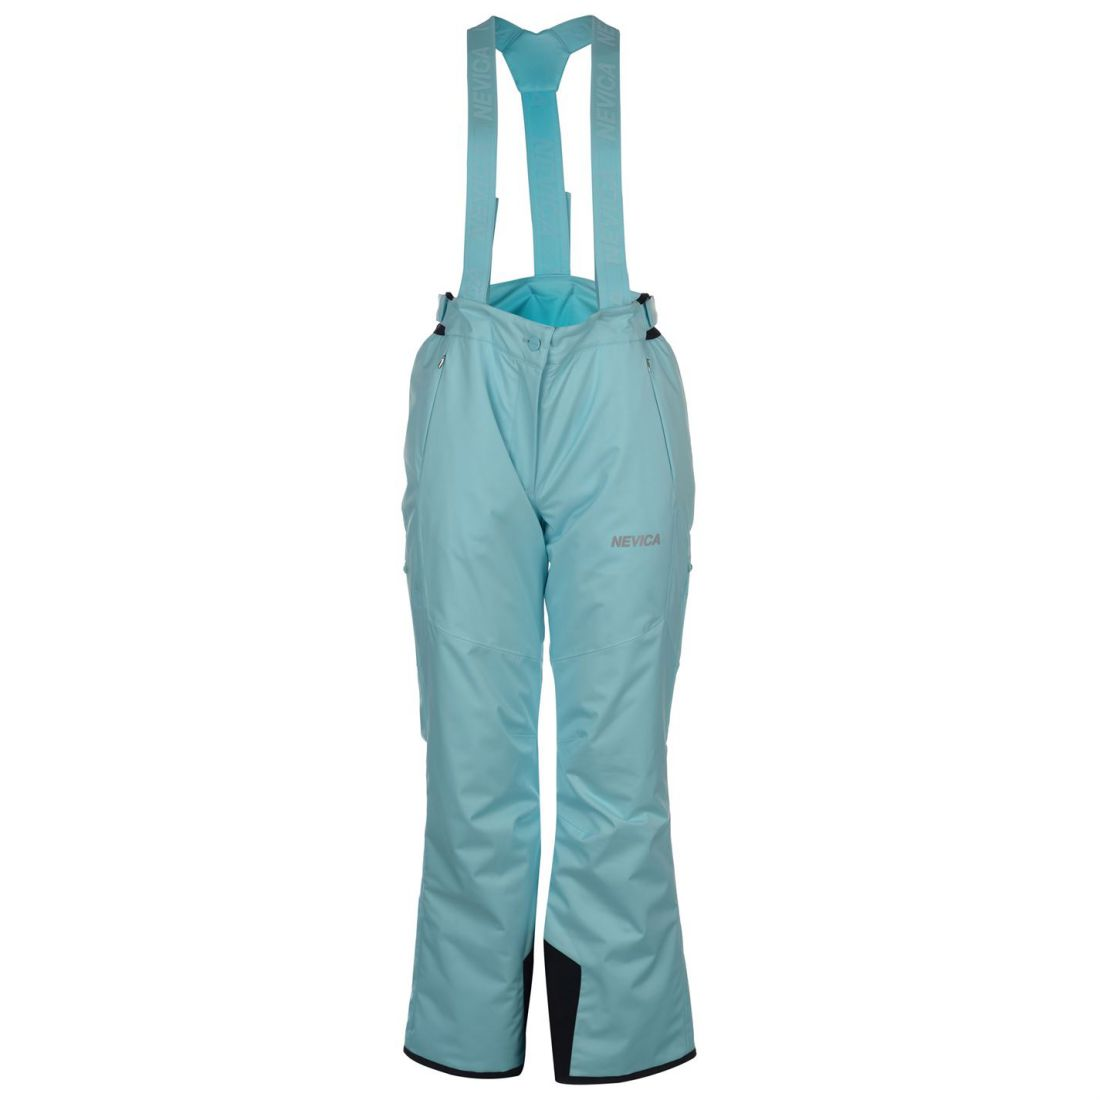 Nevica Womens Vail Ski Pants Salopettes Trousers Bottoms Waterproof  Breathable 3b40ffb82